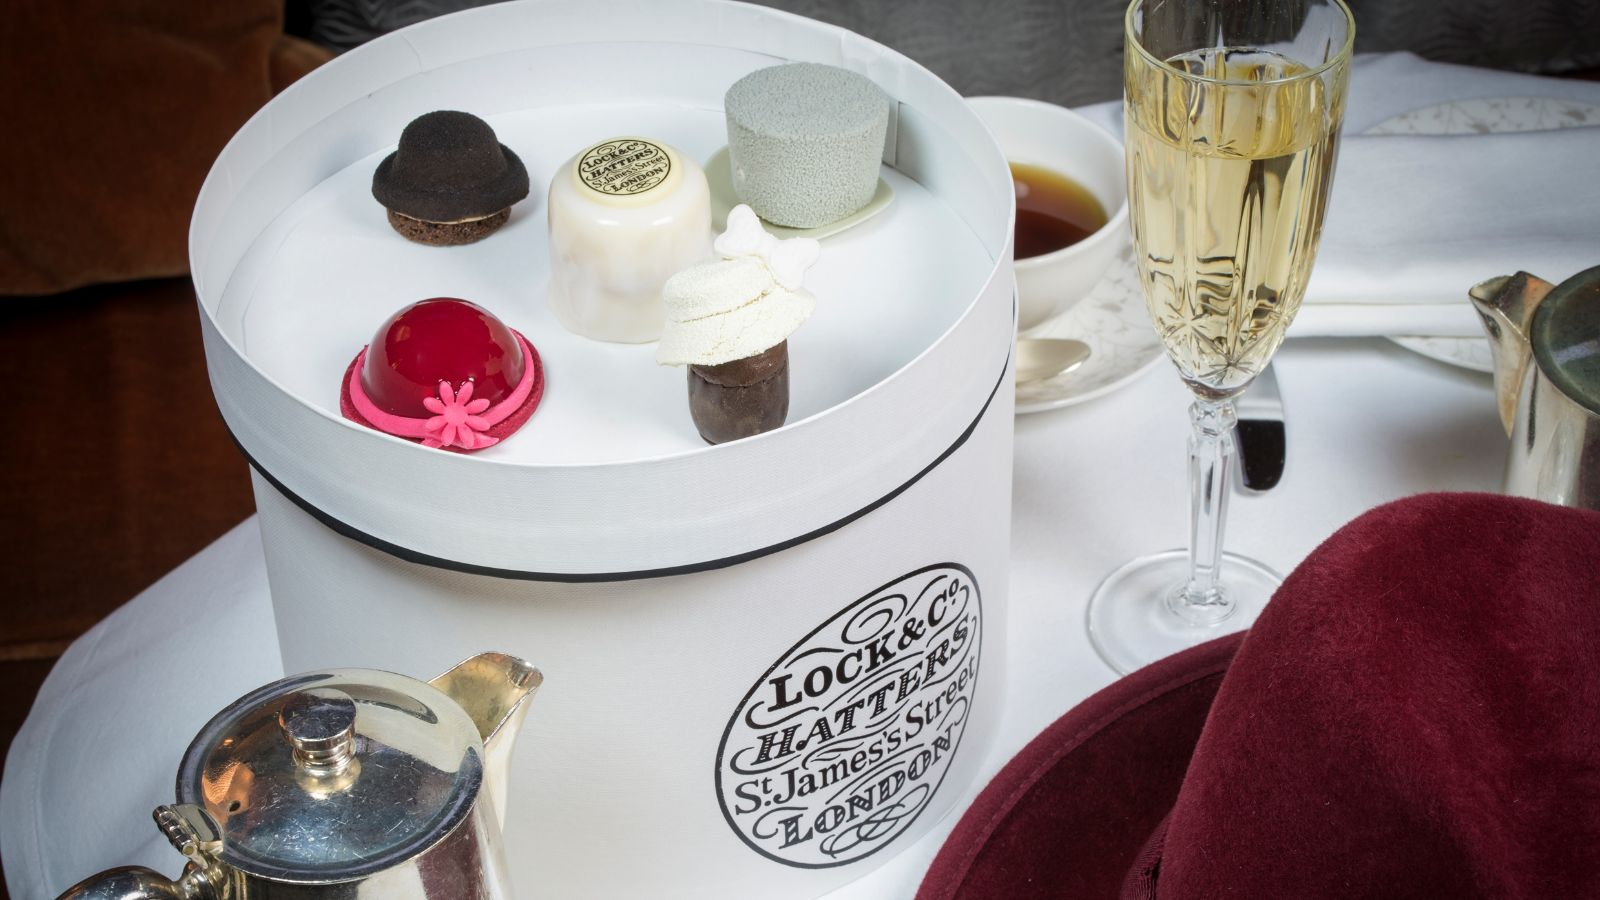 Lock & Co. Afternoon Tea at the Sheraton Grand London Park Lane